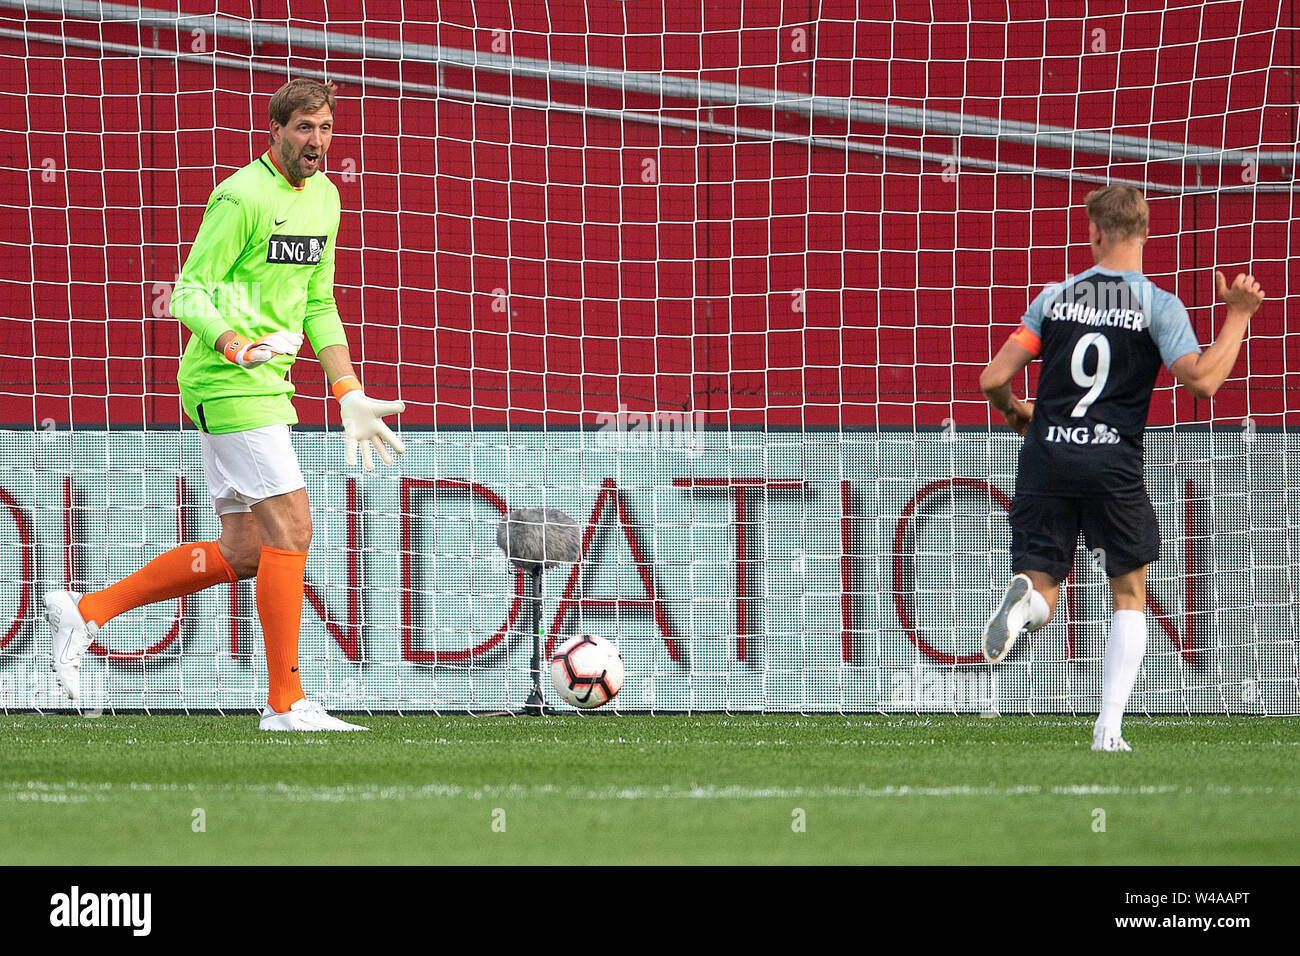 Leverkusen, Germany. 21st July, 2019. Soccer: Benefit soccer game 'Champions for Charity' in the BayArena. Racing driver Mick Schumacher (r) takes 1-0 lead against former basketball player Dirk Nowitzki. Credit: Marius Becker/dpa/Alamy Live News - Stock Image